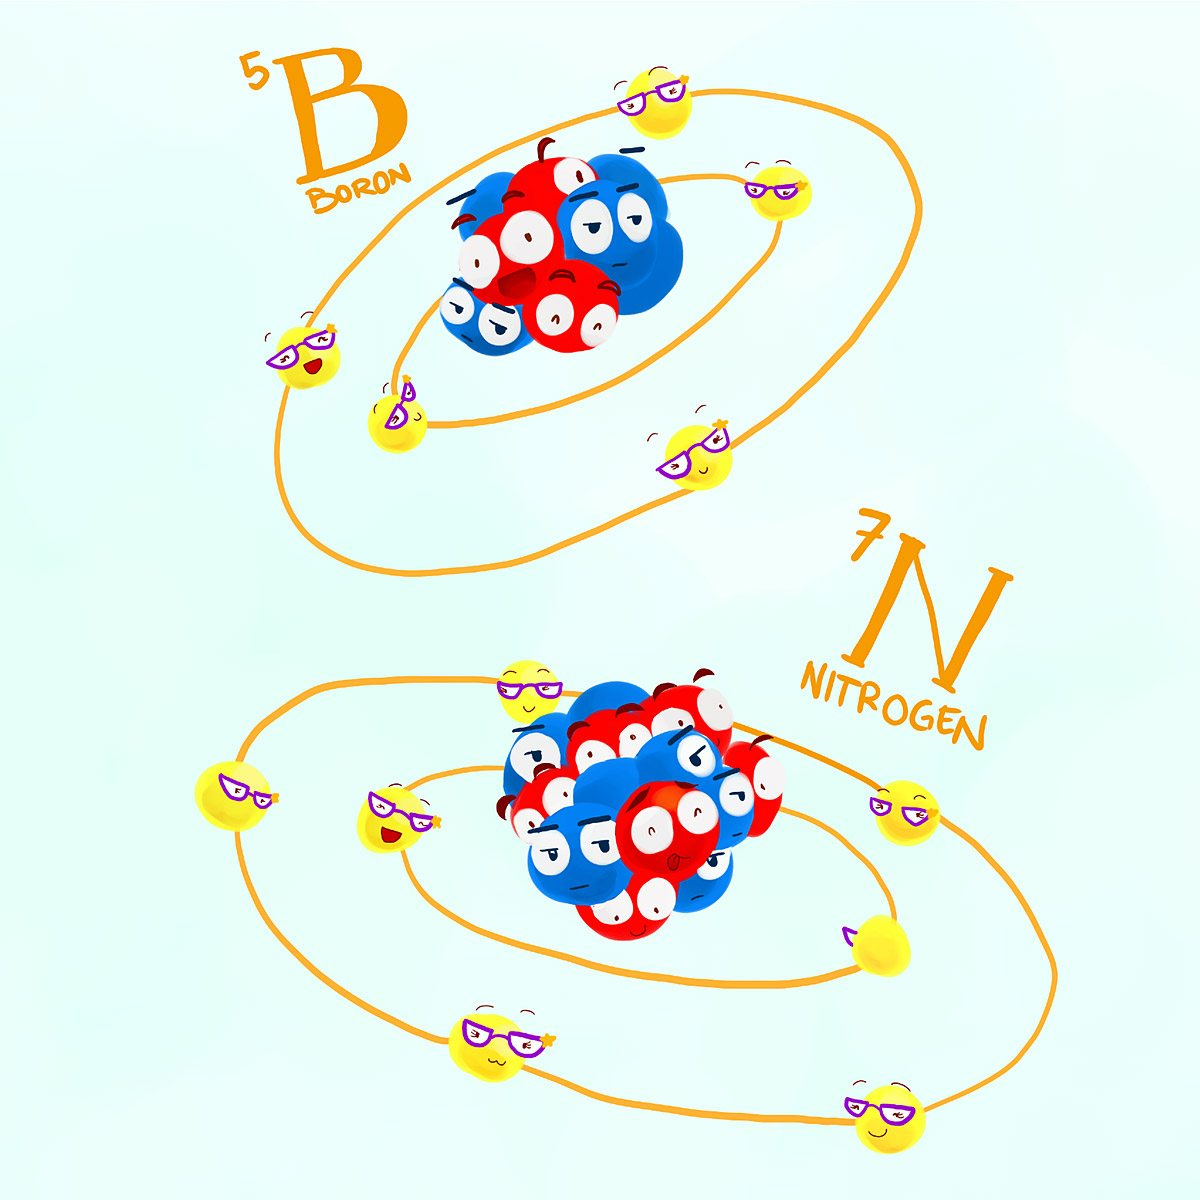 Protons and Neutrons plus Electrons